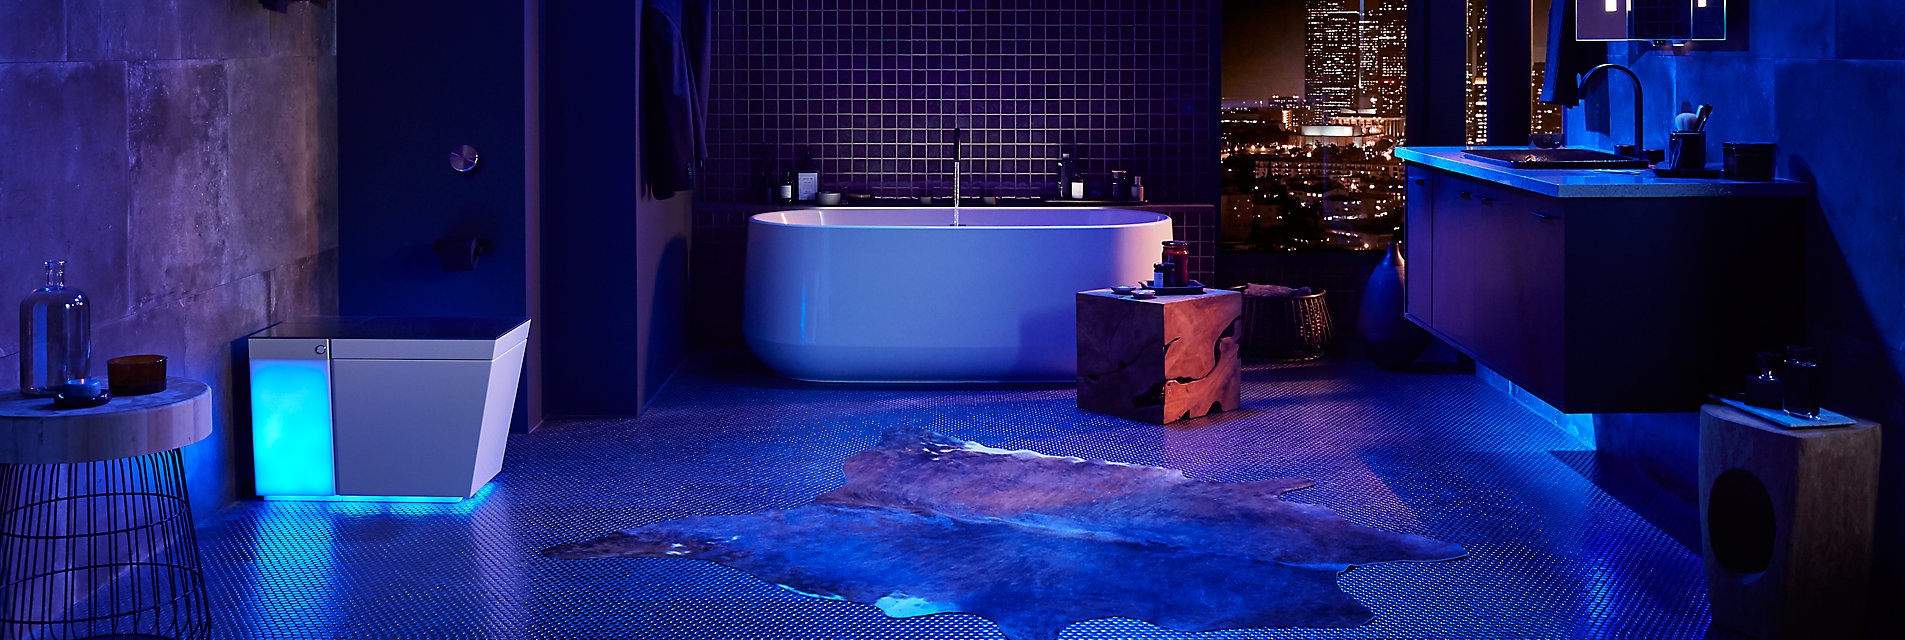 KOHLER   Toilets, Showers, Sinks, Faucets and More for ...